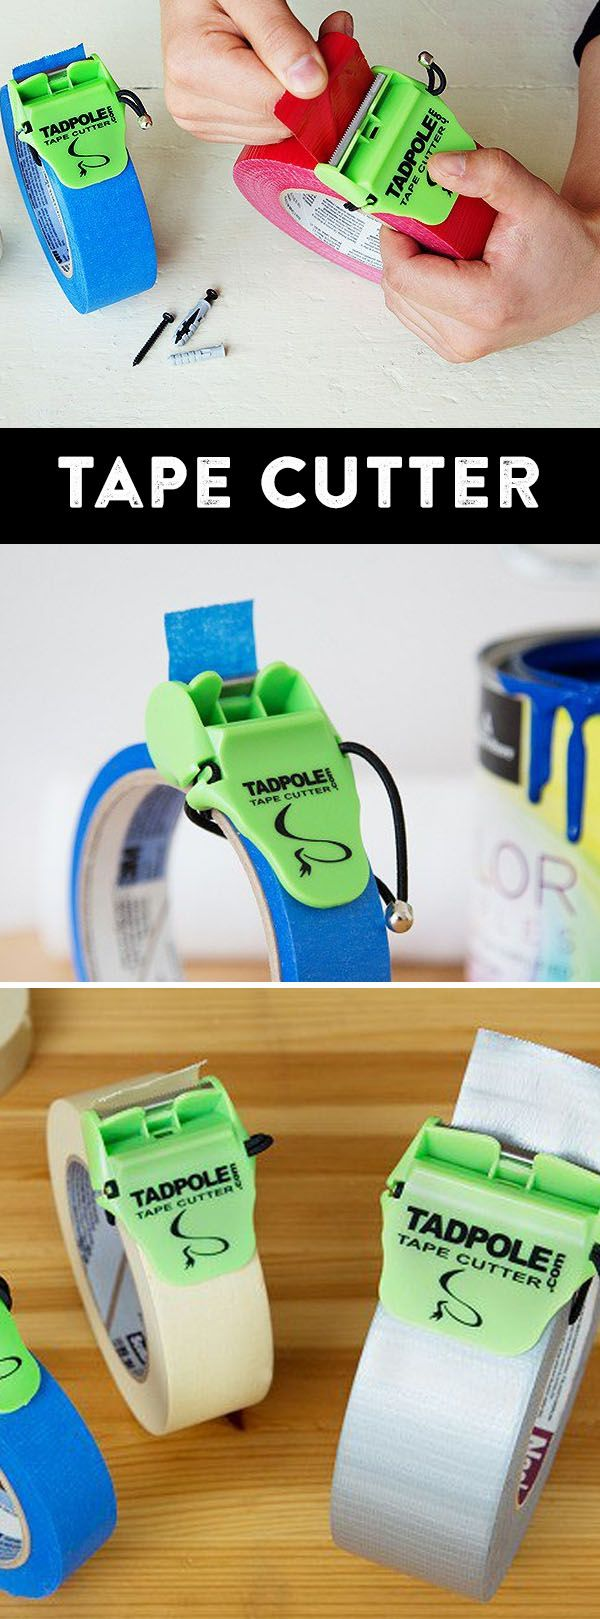 Ever struggled to find the end of a tape roll, or to cut off pieces? The Tadpole tape cutter will put an end to that.  Great for moving and packing boxes, DIY paint projects, and just to have around the house.